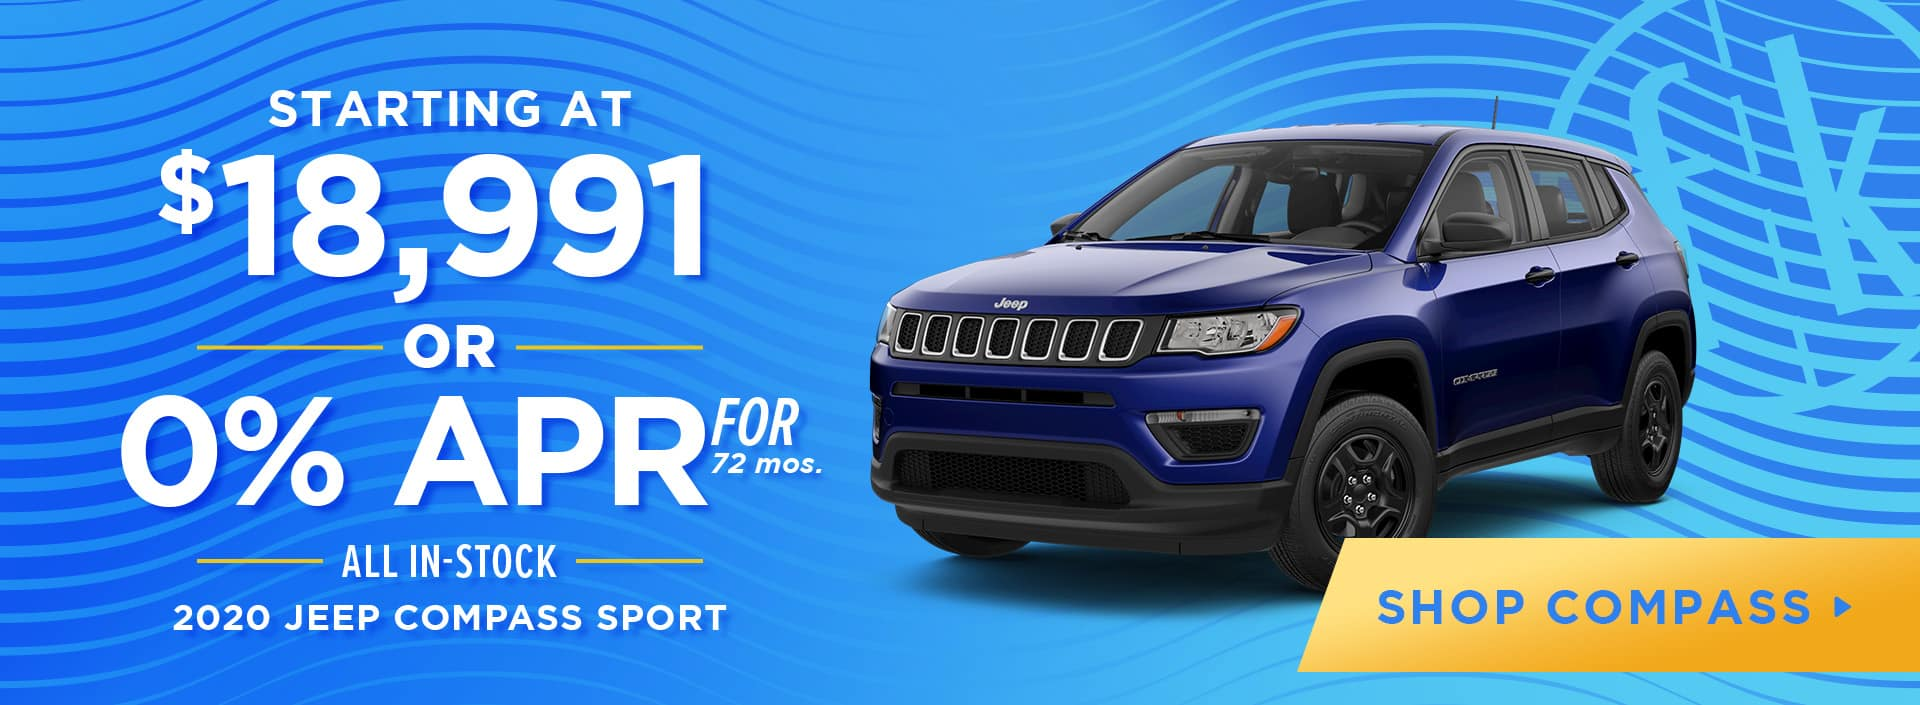 Starting at $18,991 -OR- 0% for 72 All In-Stock 2020 Jeep Compass Sport